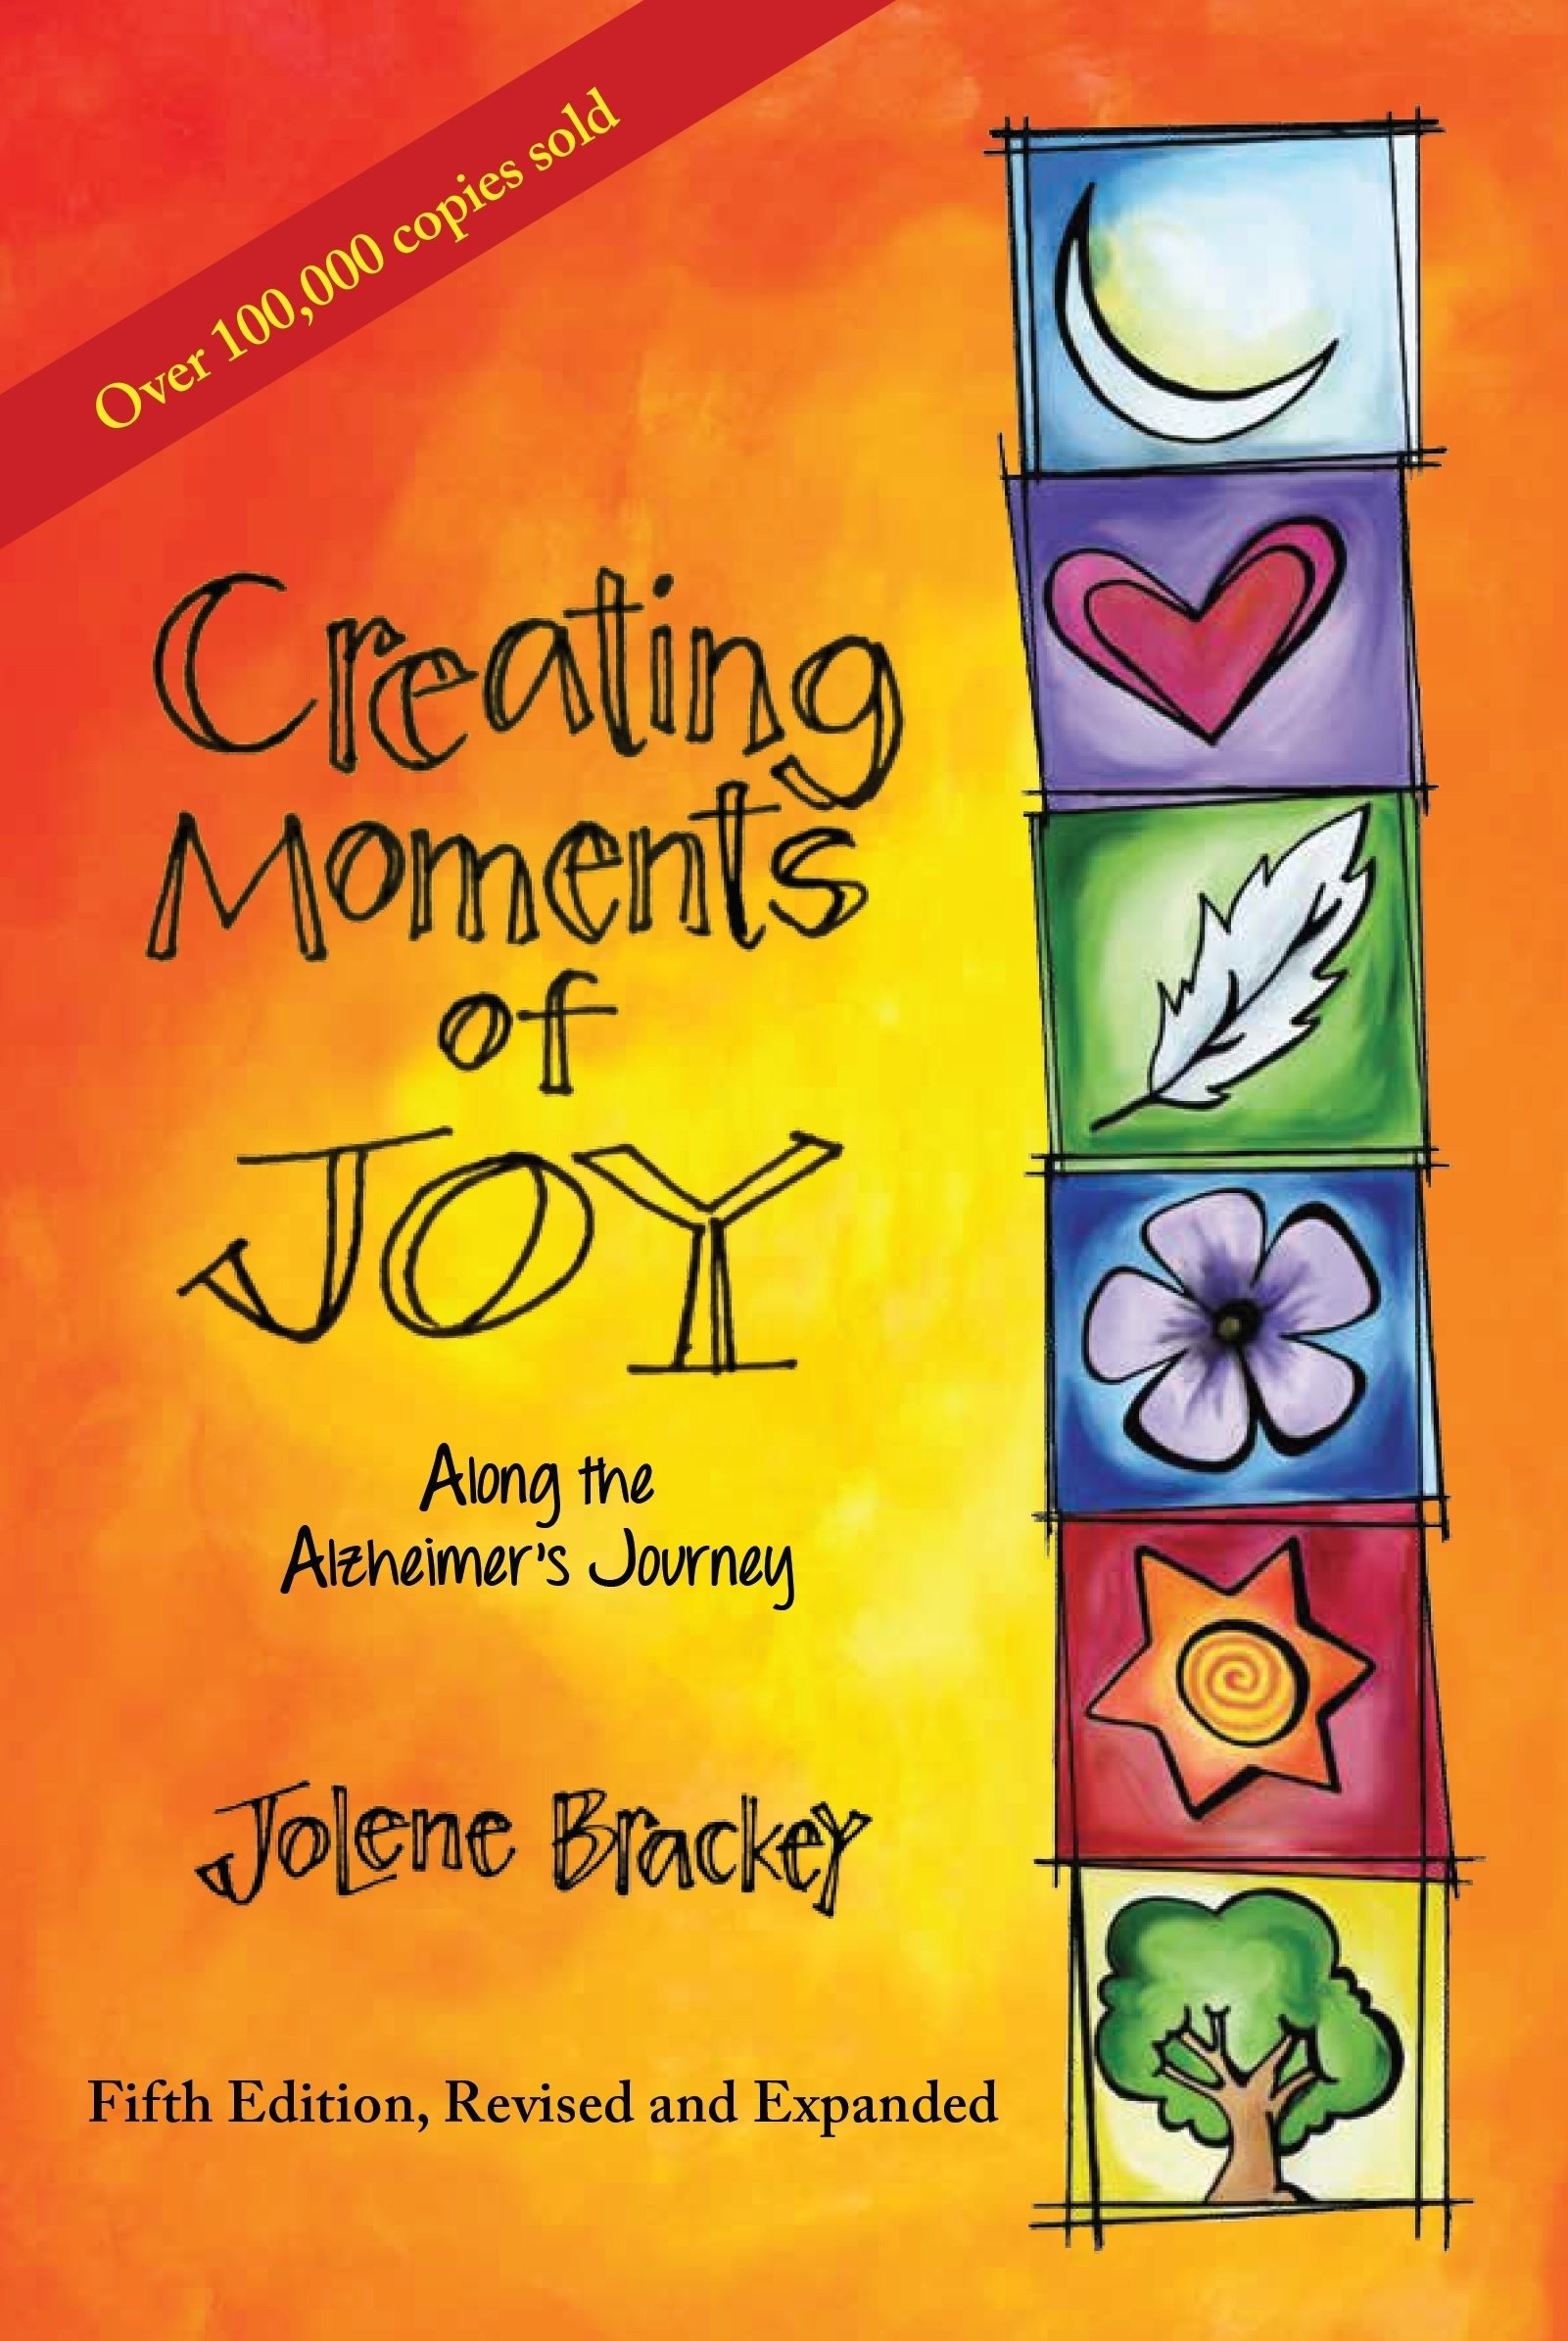 Creating Moments of Joy Along the Alzheimer's Journey: A Guide for Families and Caregivers, Fifth Edition, Revised and Expanded by Purdue University Press